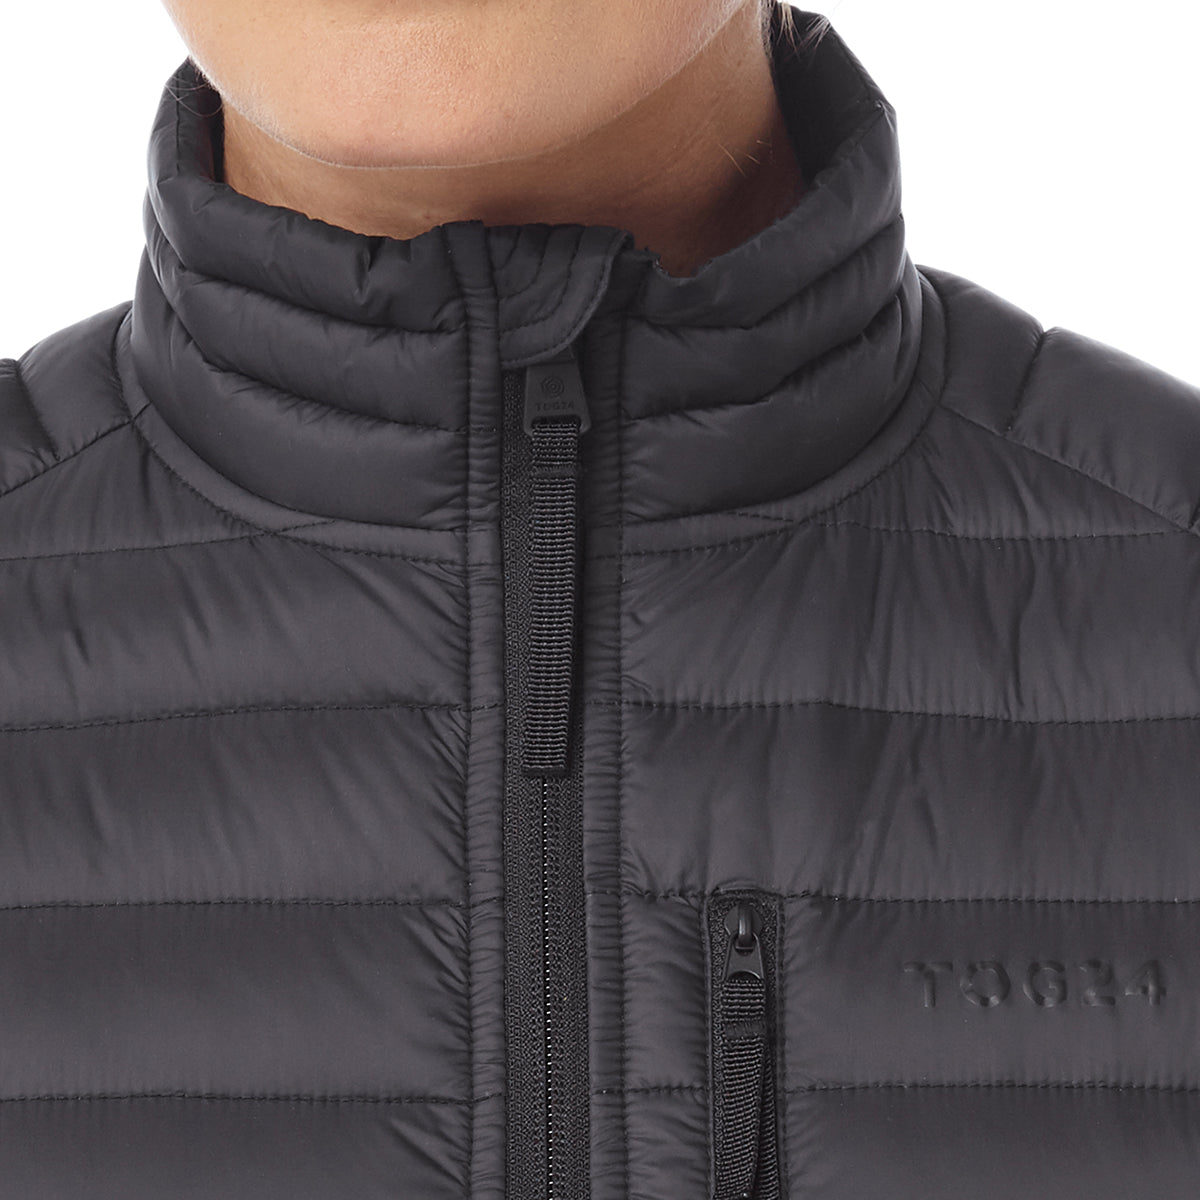 Beck Womens Down Jacket - Black image 4